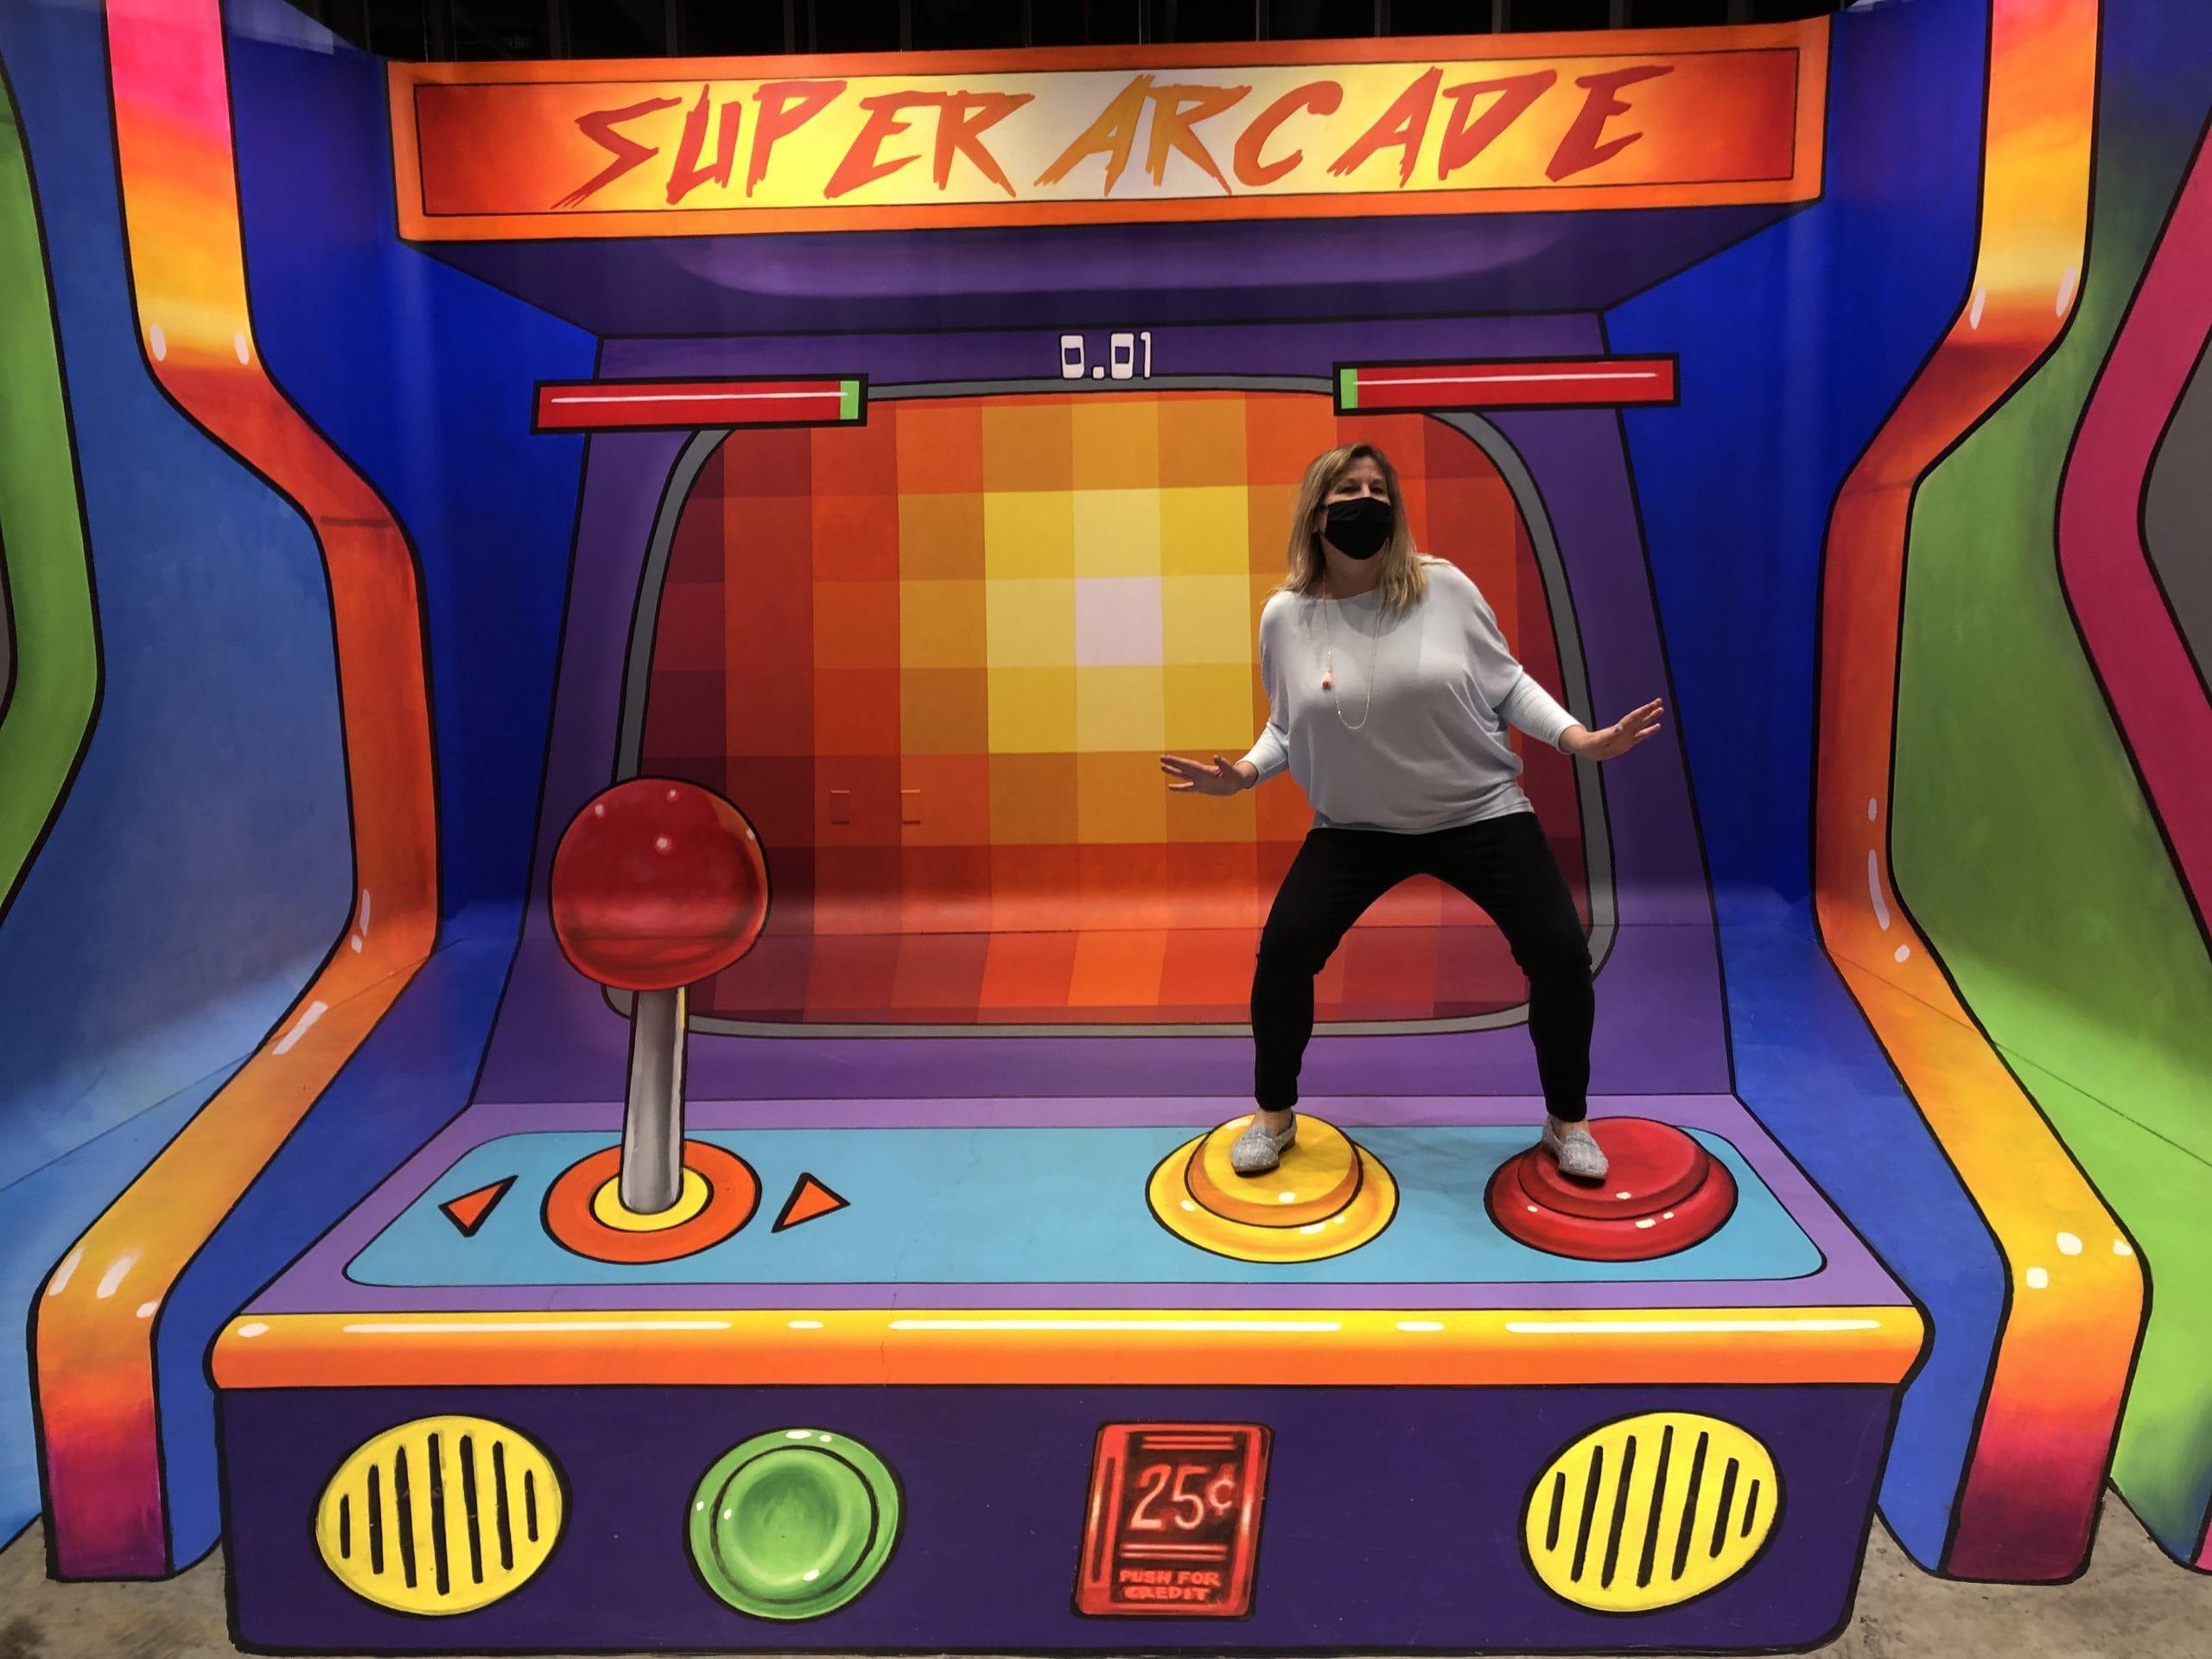 A person poses in the arcade game mural